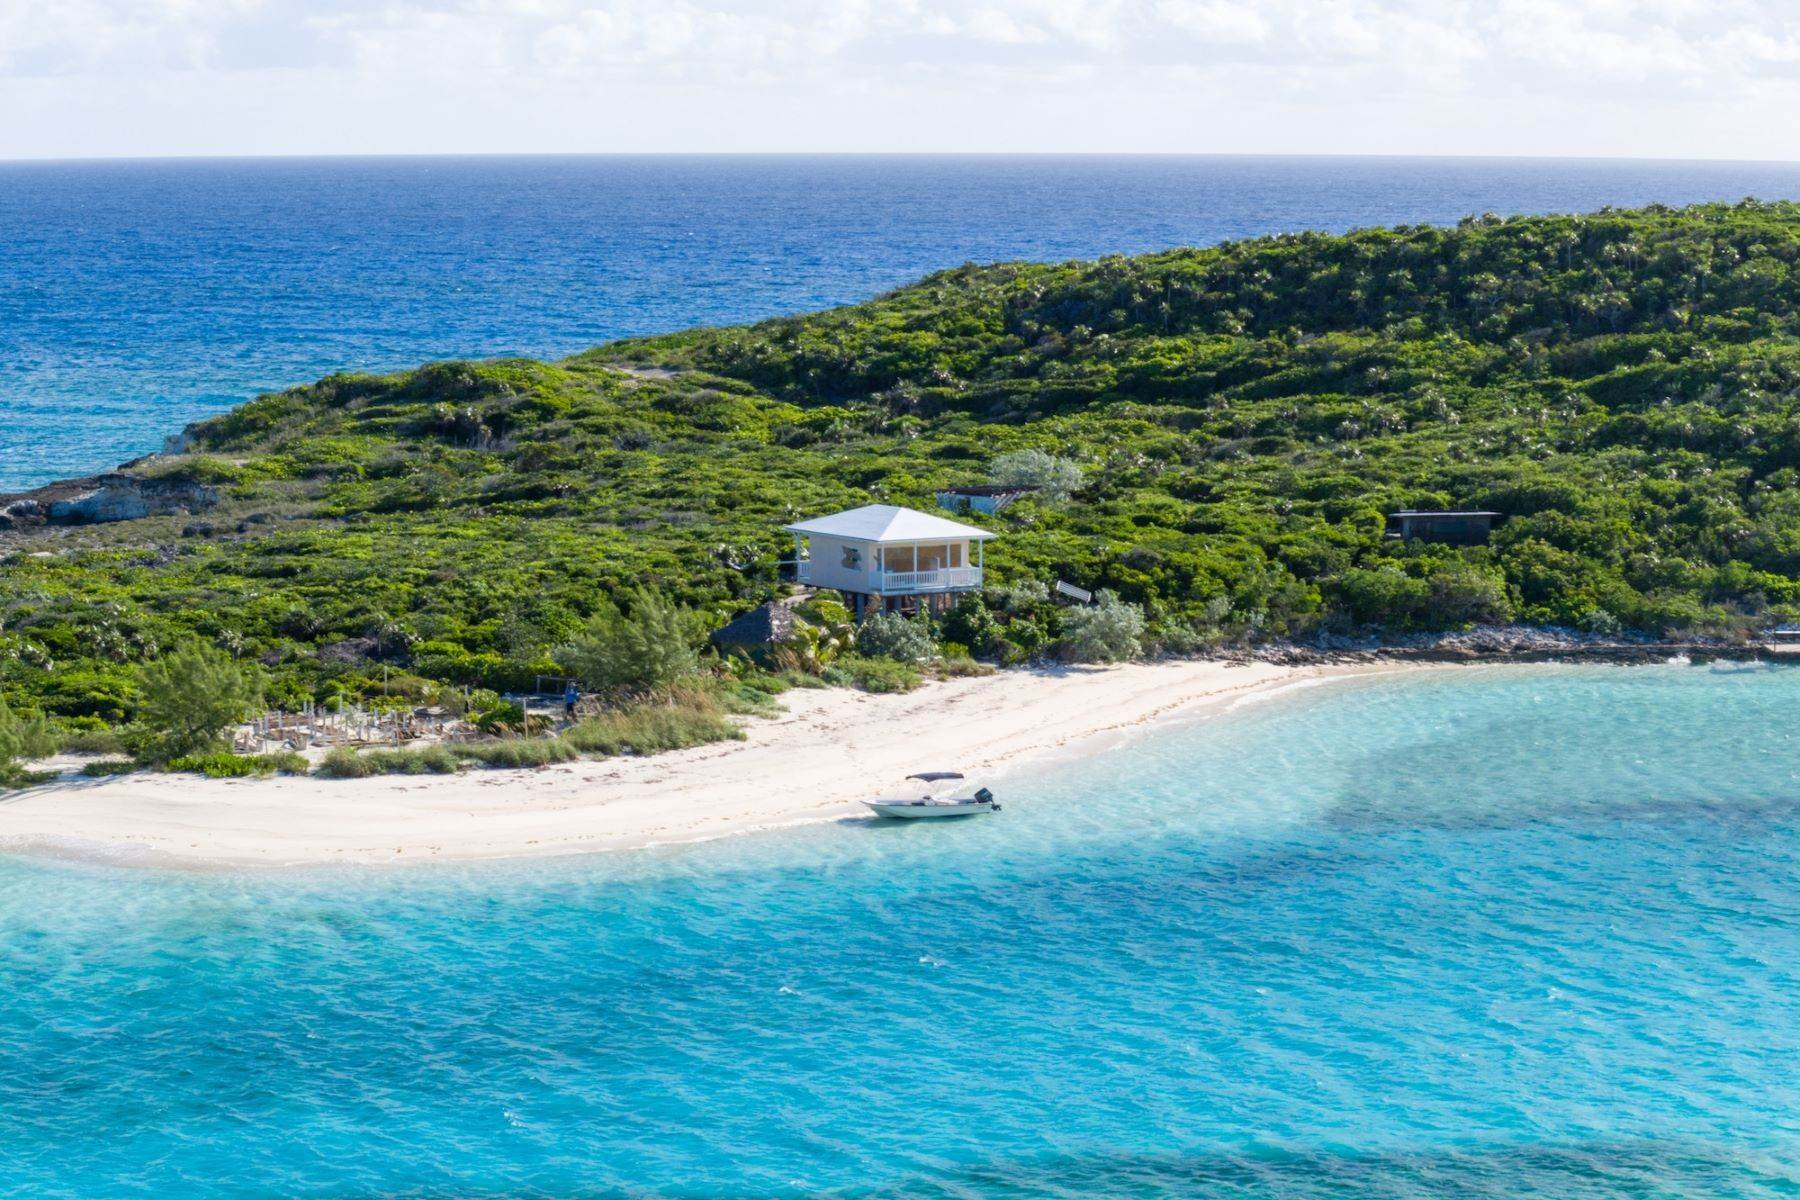 Private Islands for Sale at Lumber Cay, Exuma Exuma Cays, Exuma Bahamas